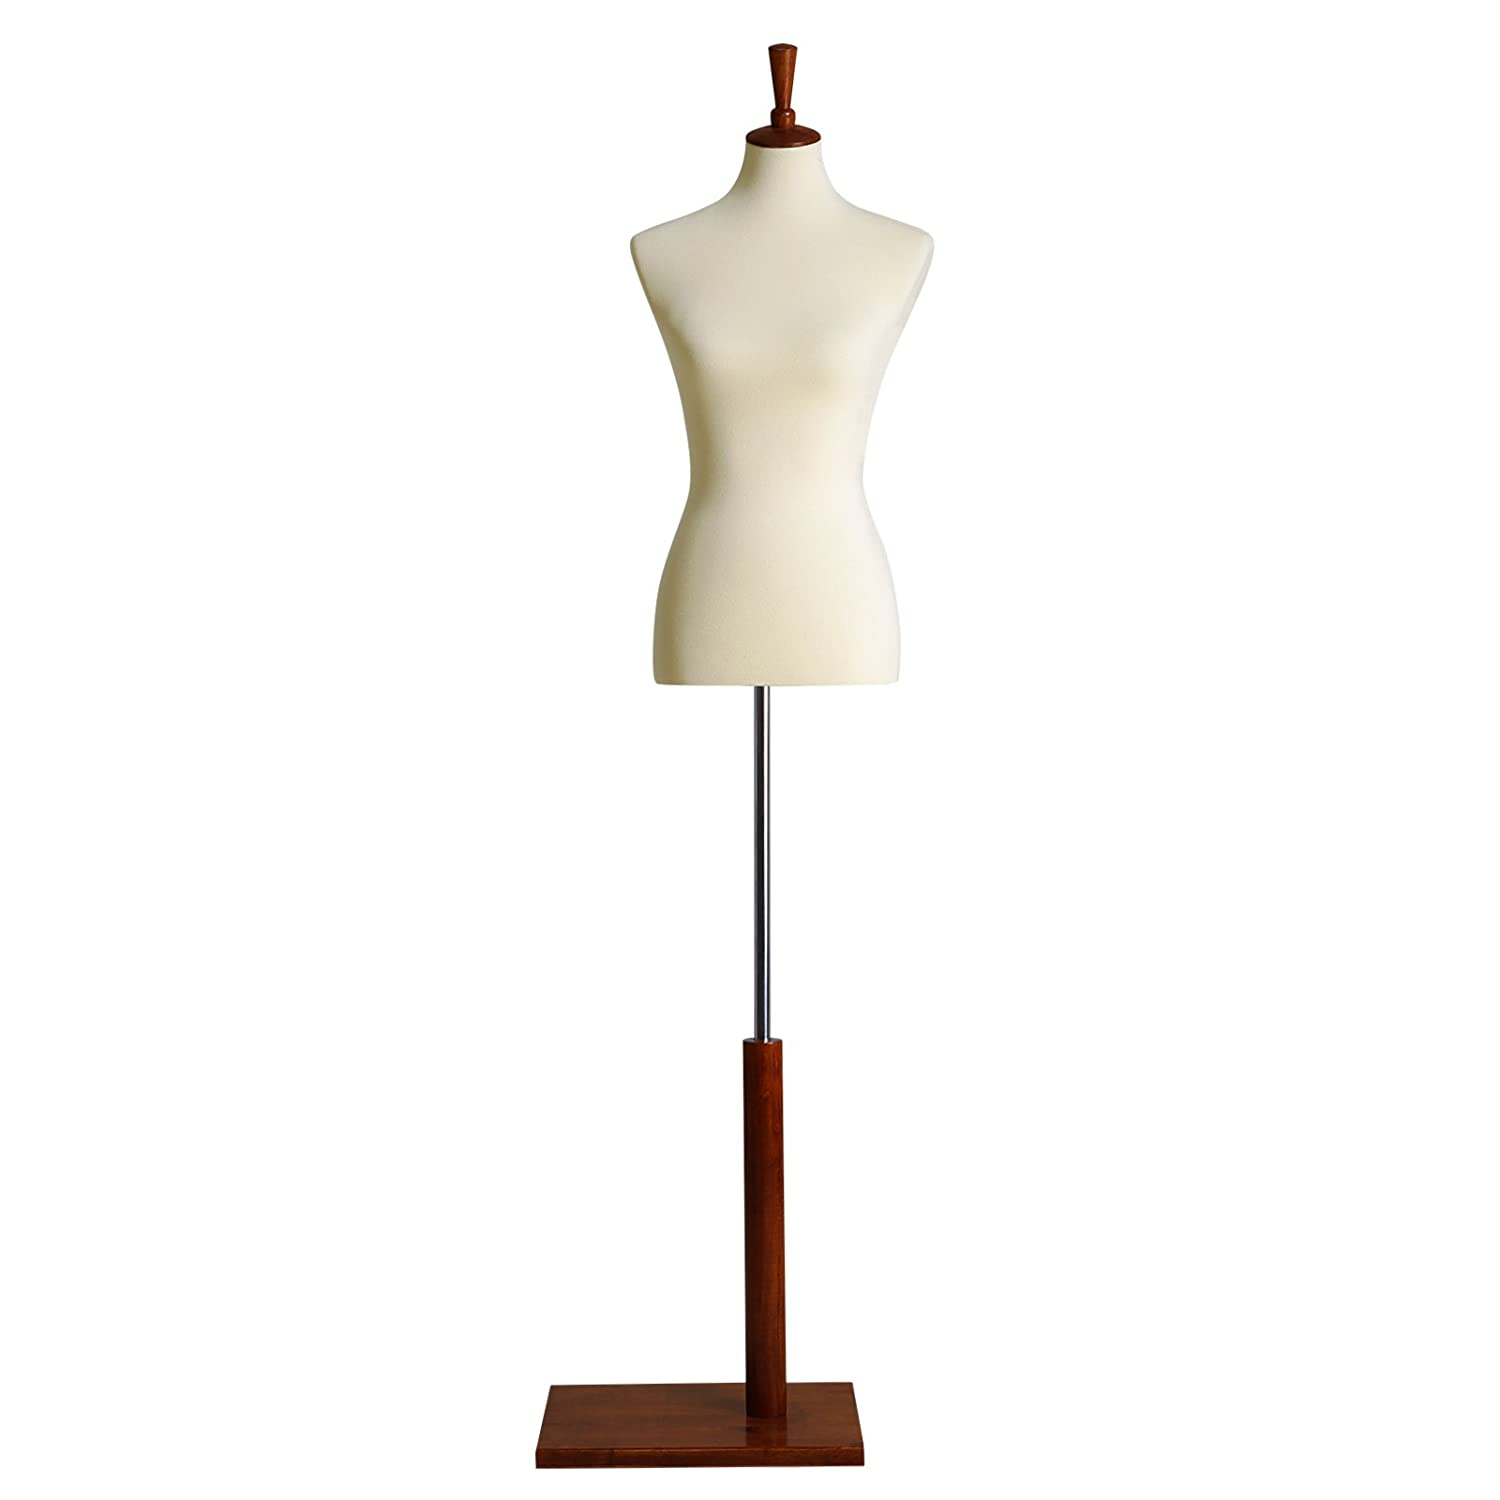 SONGMICS Female Mannequin Torso Body Dress Form with Tripod Stand, Medium Size 6-8, 34 26 35, Non-Straight Pinnable, Adjustable Height, for Dress Clothing Display Beige UMDF03BE 34 26 35